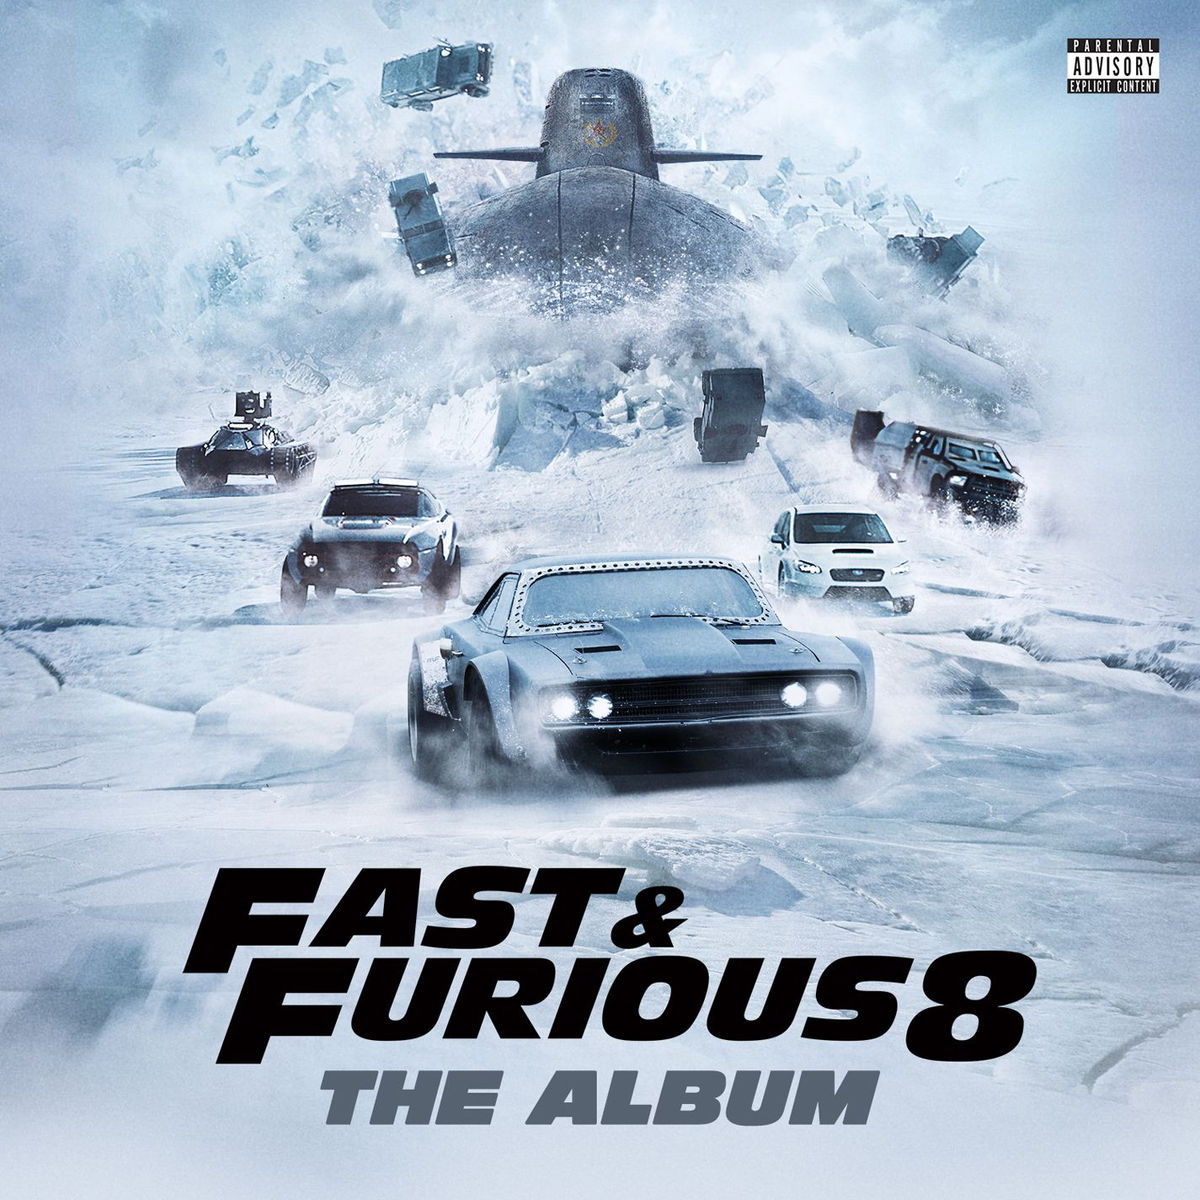 ultratop be - Soundtrack - Fast & Furious 8 - The Album